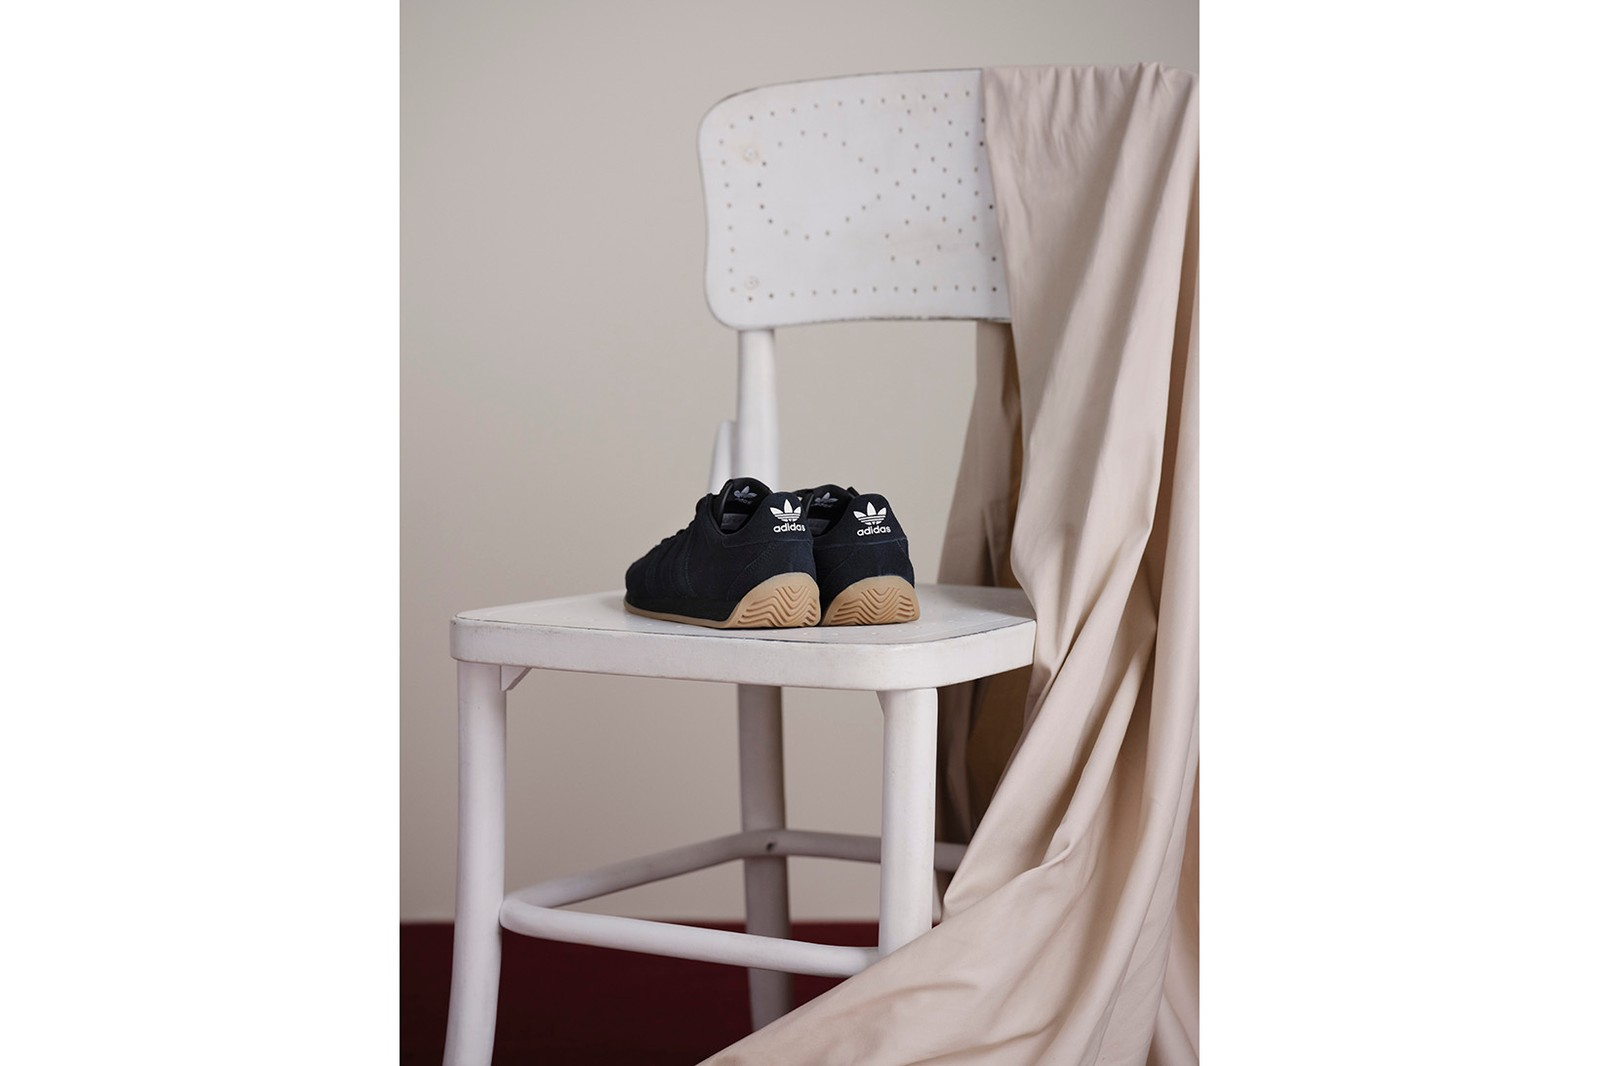 Latest Sneaker Drops Available on Net-A-Porter Rick Owens adidas Veja Shoe 53045 Khaite